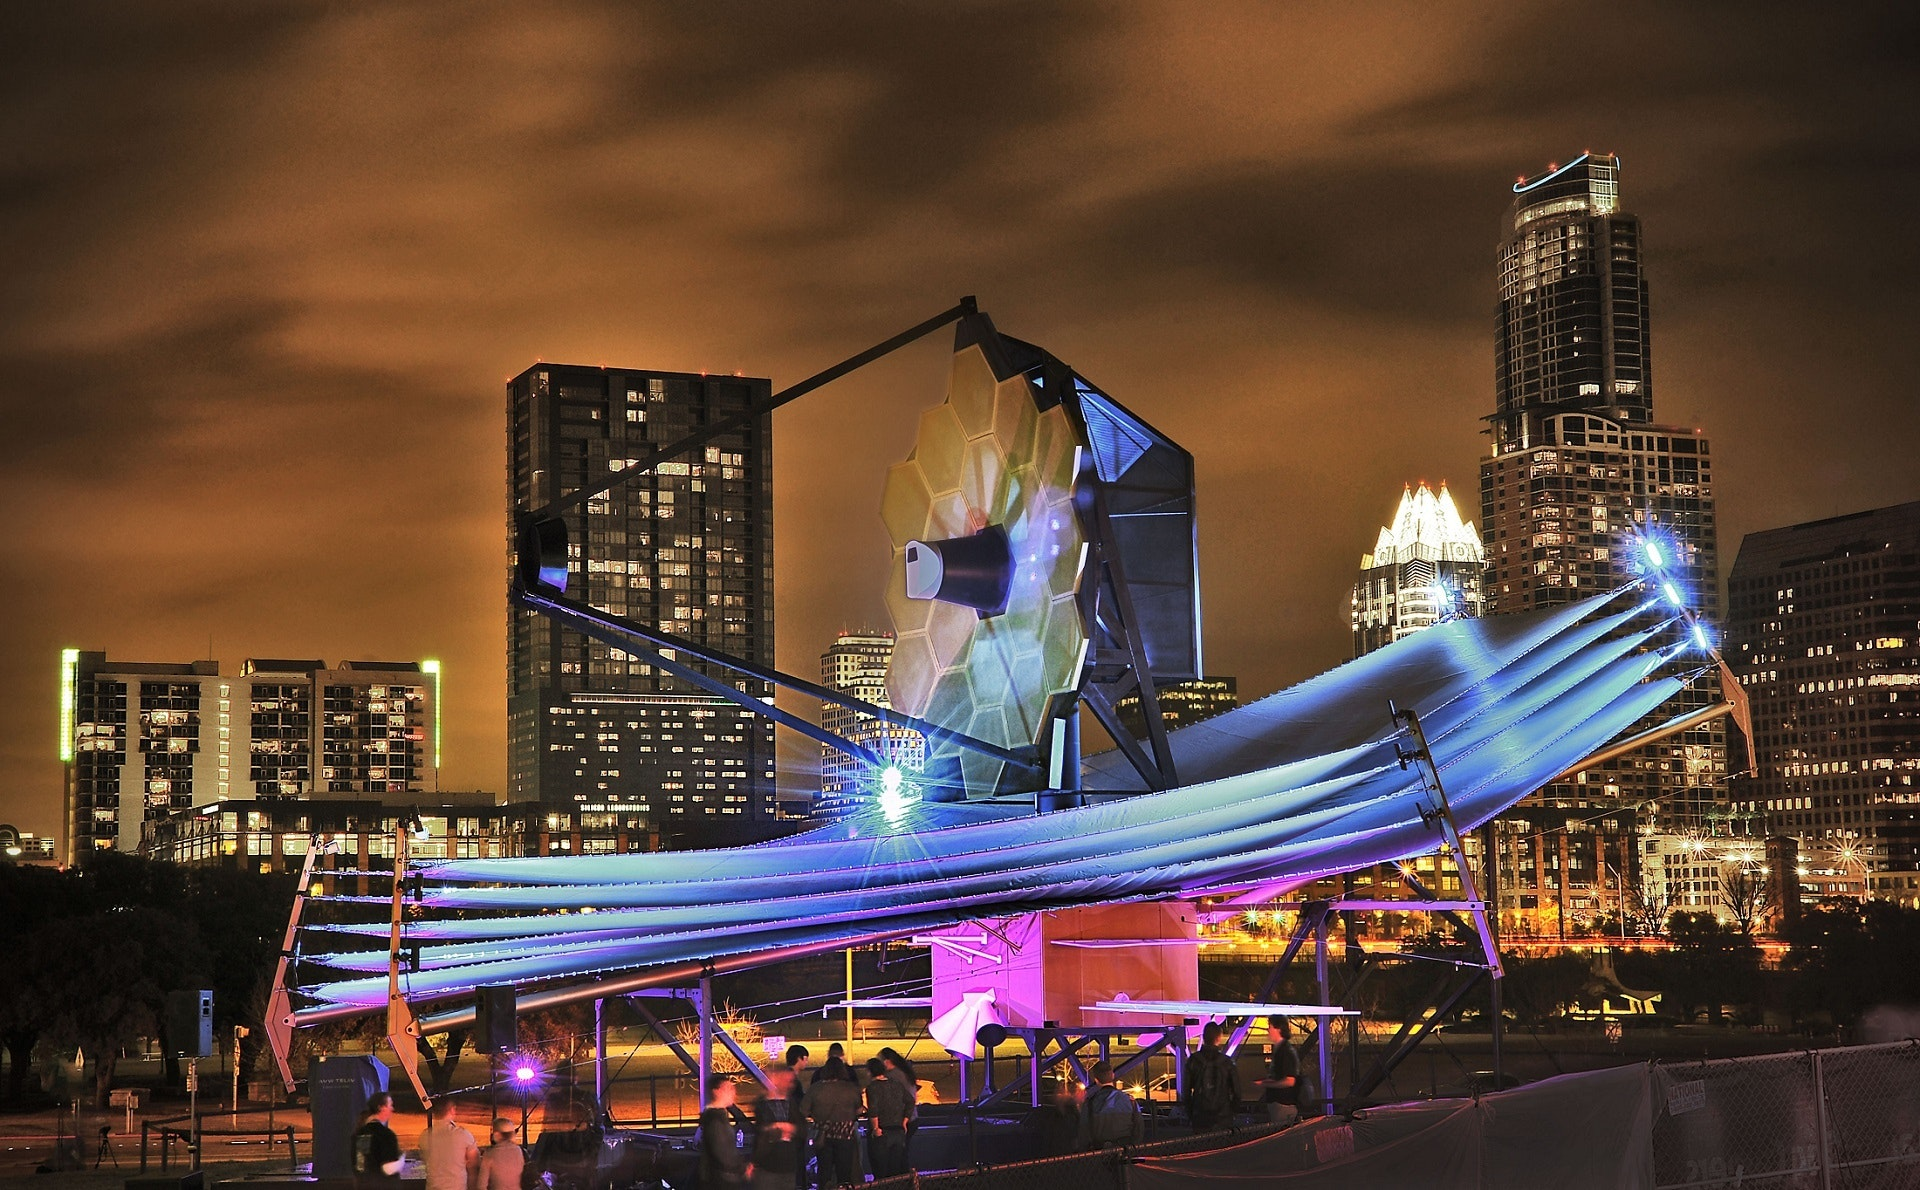 Hire event staff to construct a technological tensile structure art installation.